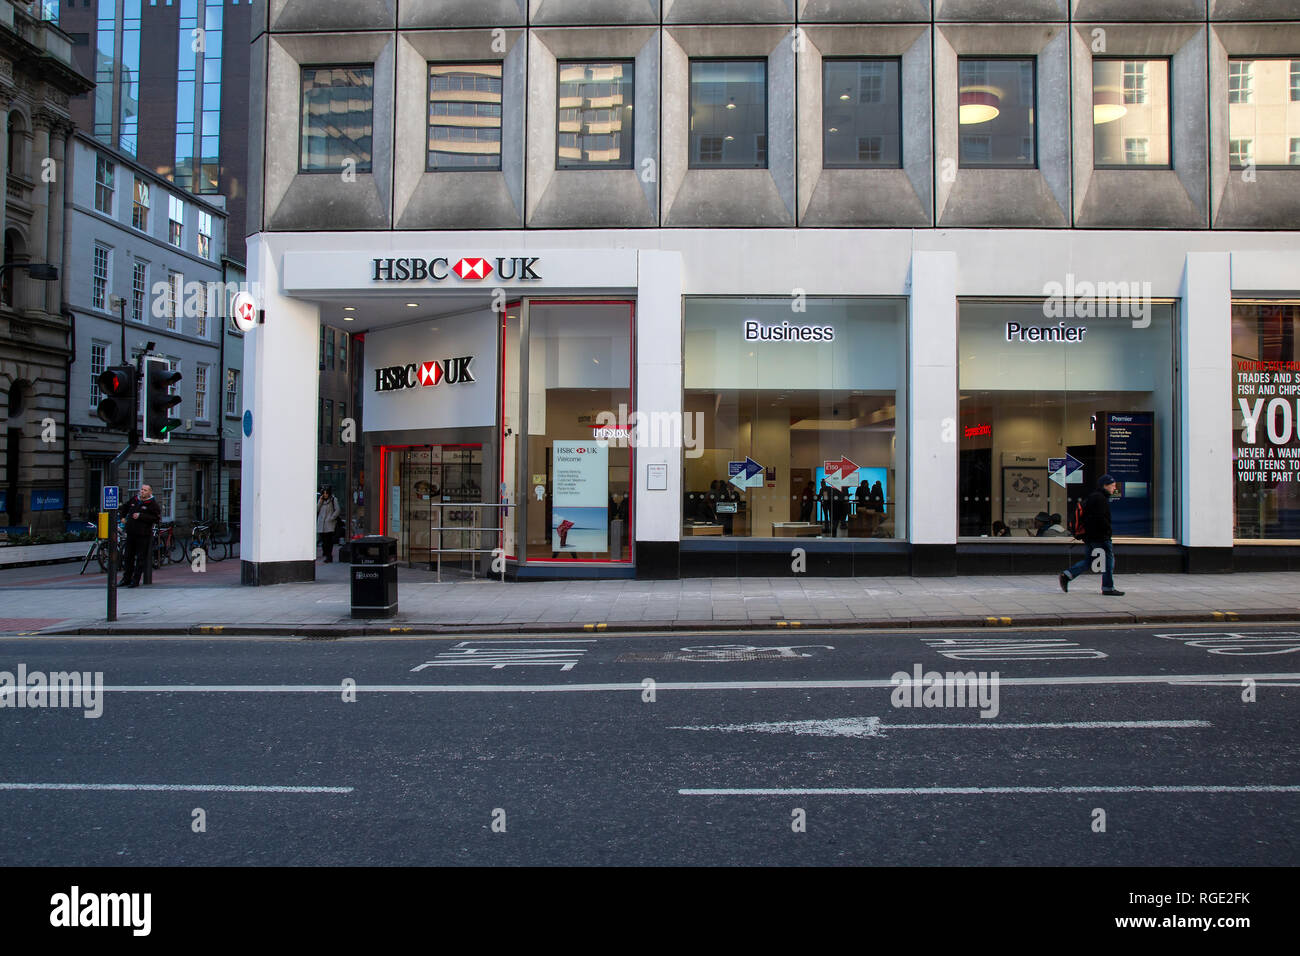 Hsbc Bank Stock Photos & Hsbc Bank Stock Images - Alamy